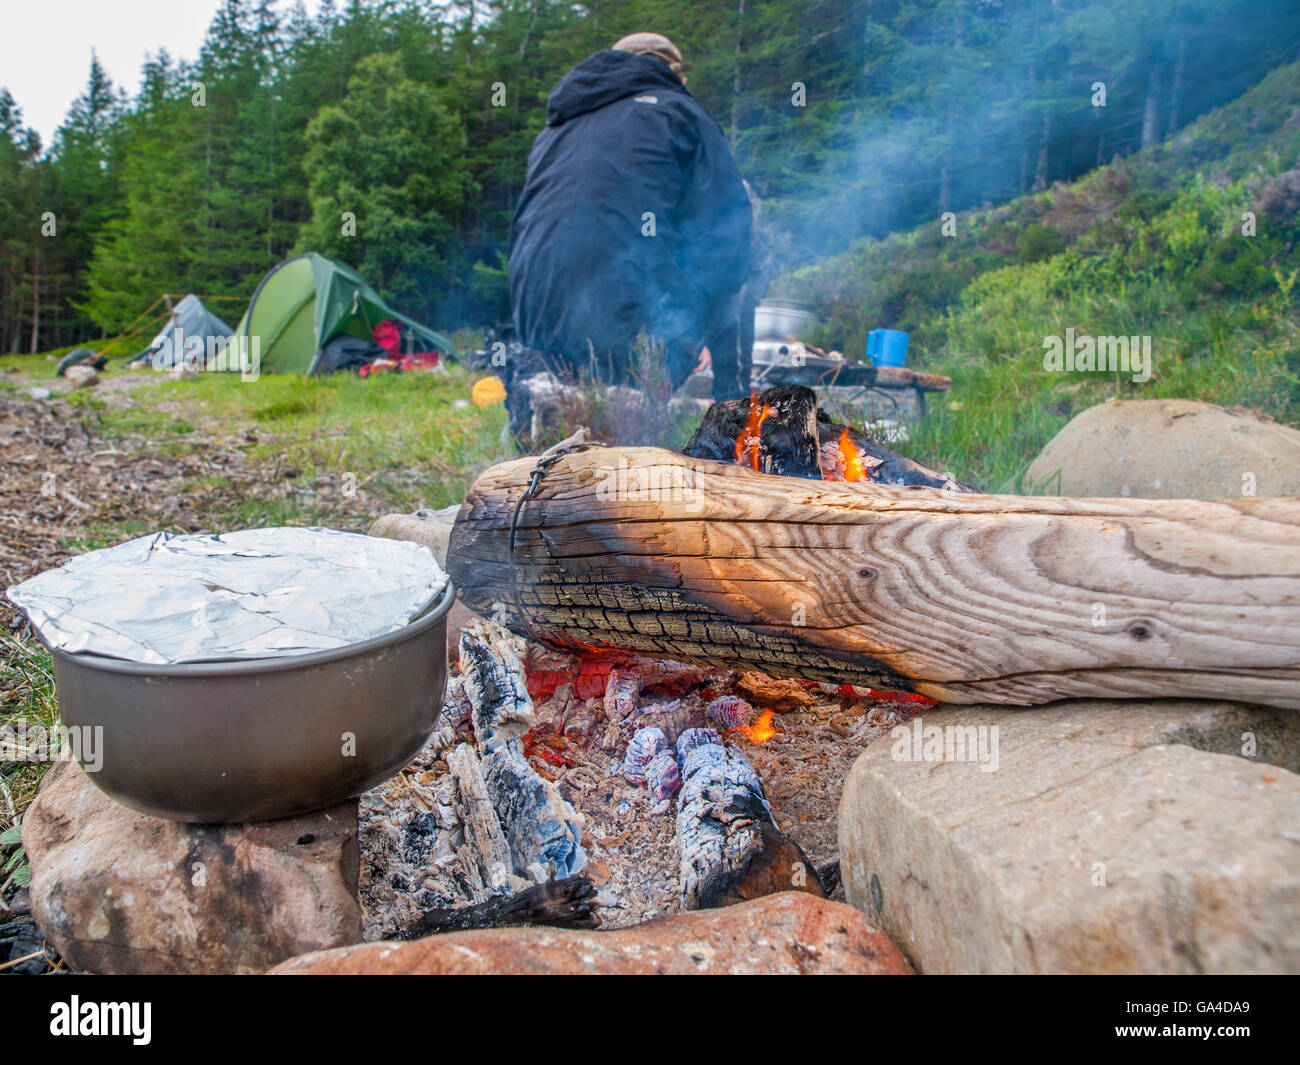 A cooking pan on a camp fire, camper and tents in background. Scottish Highlands - Stock Image